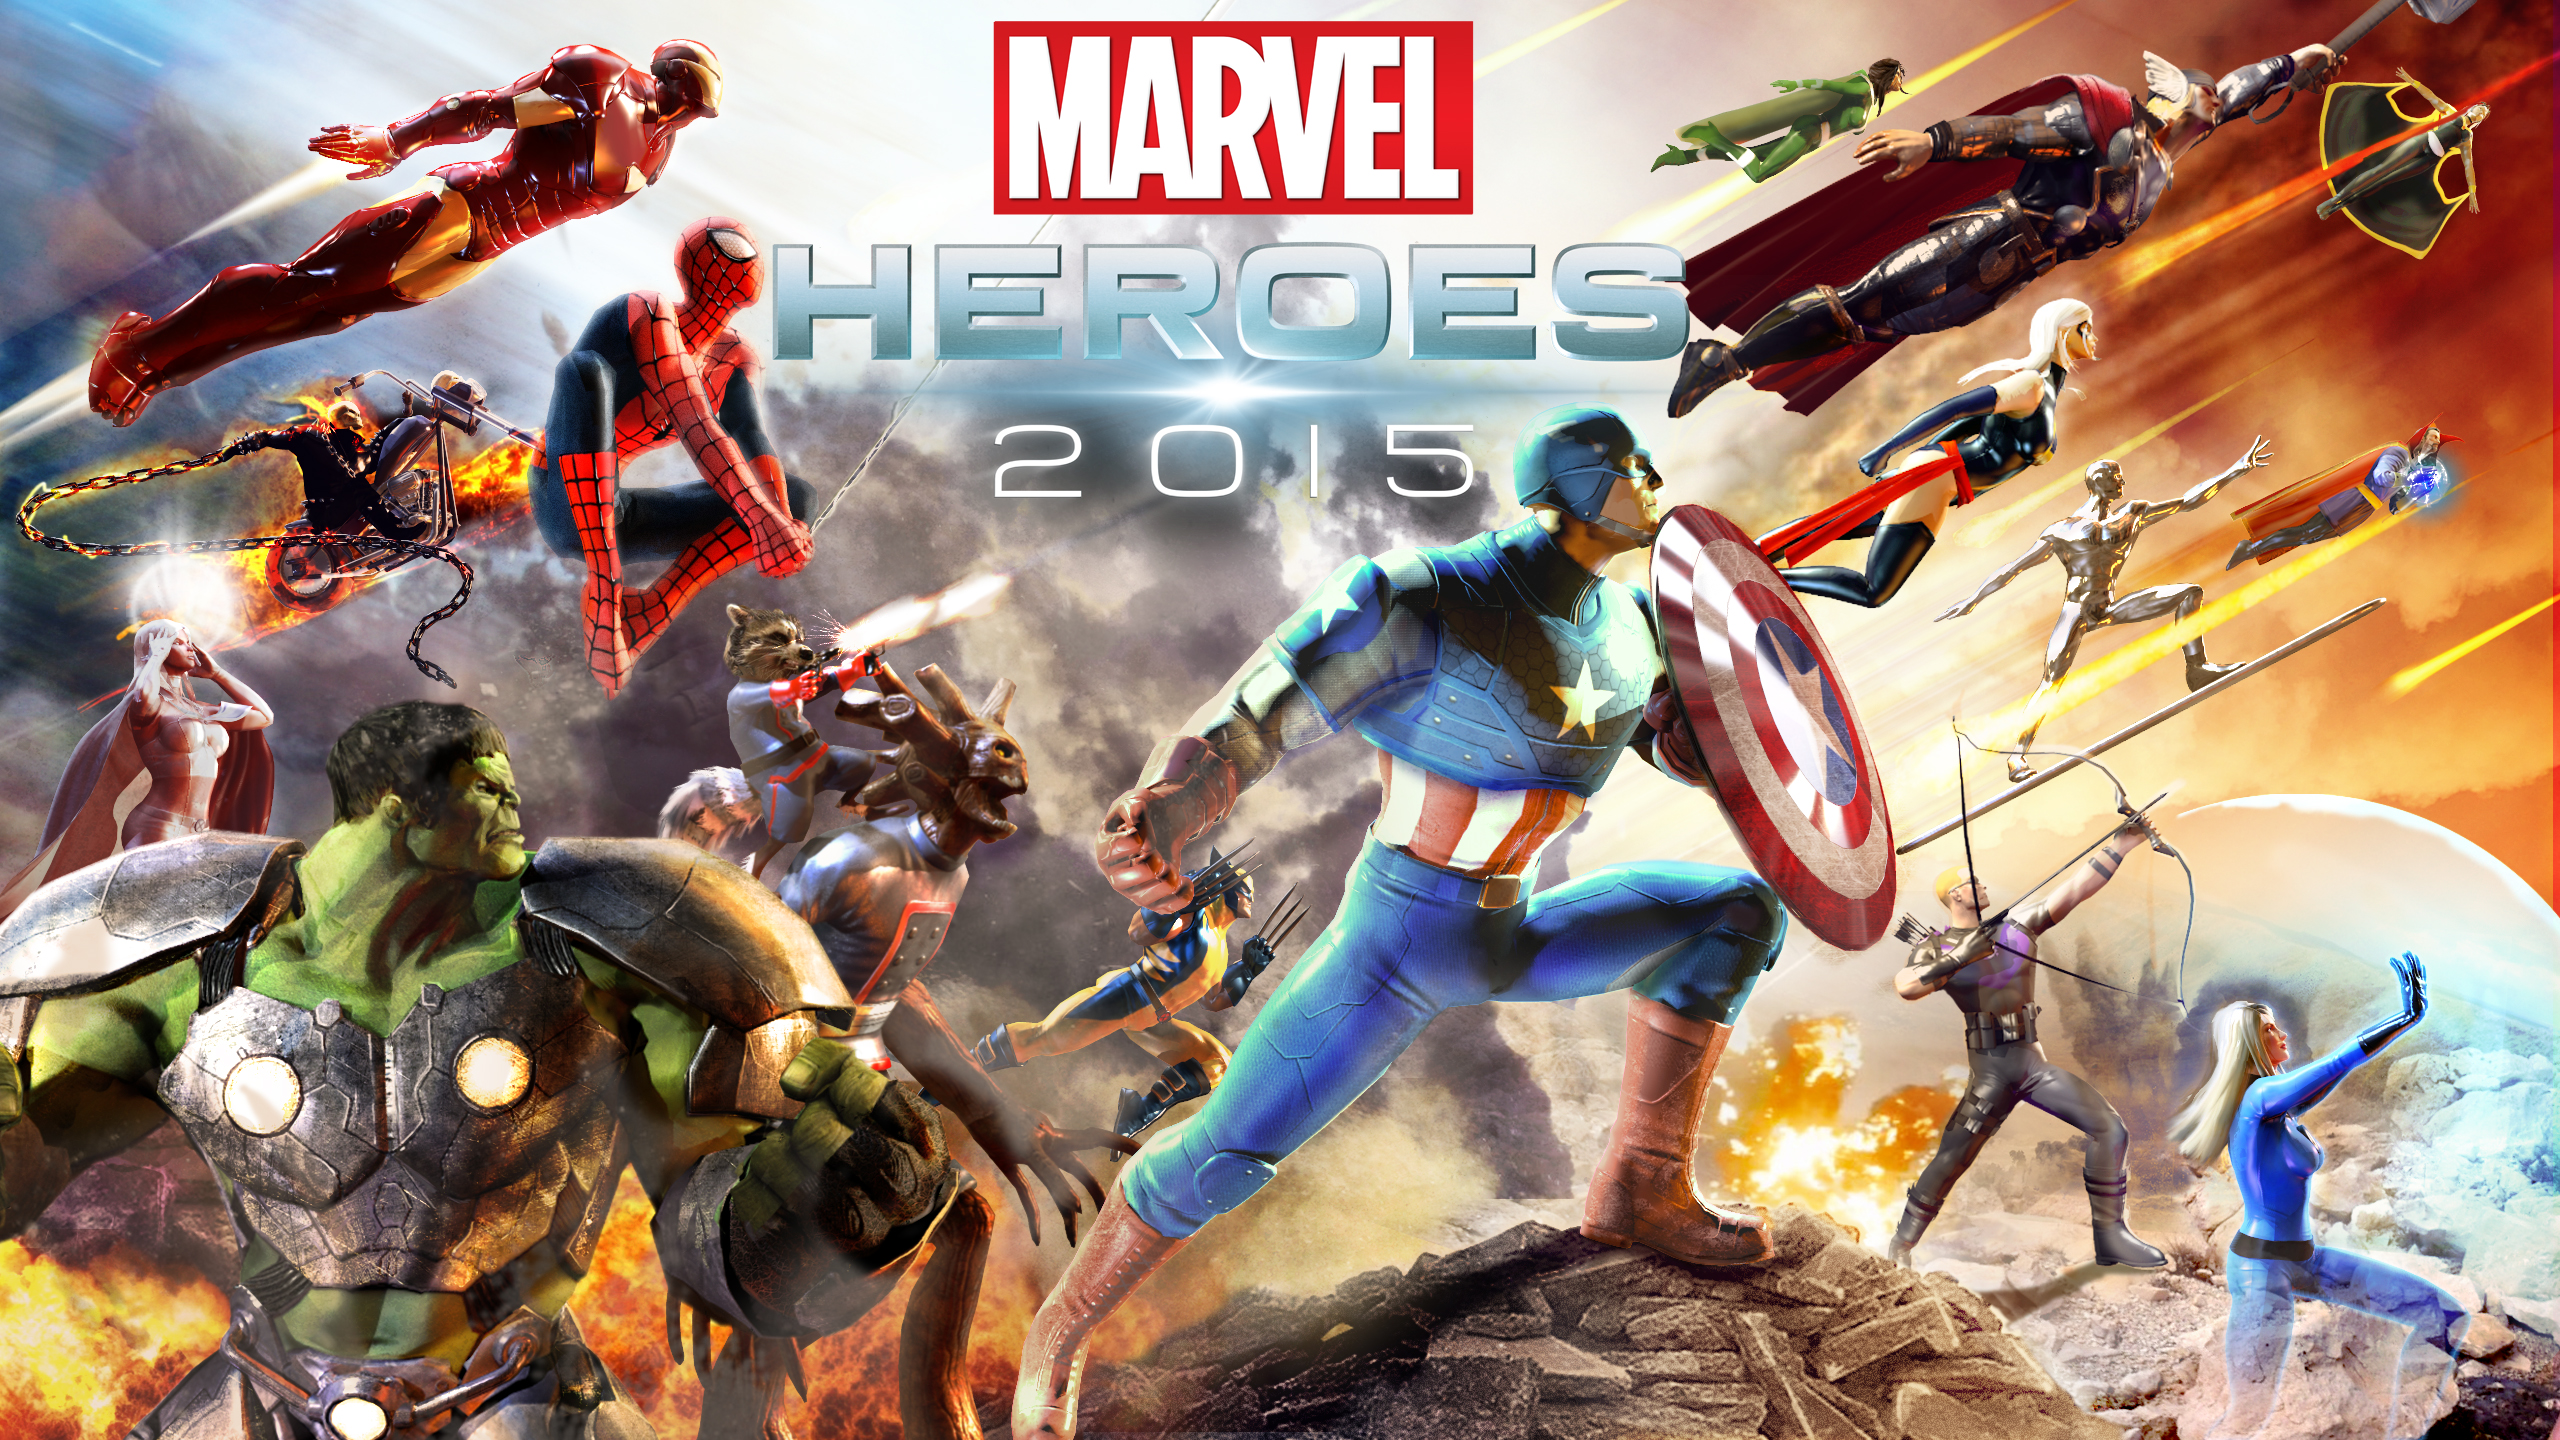 Marvel Heroes 2016 coming this fall, big changes inbound